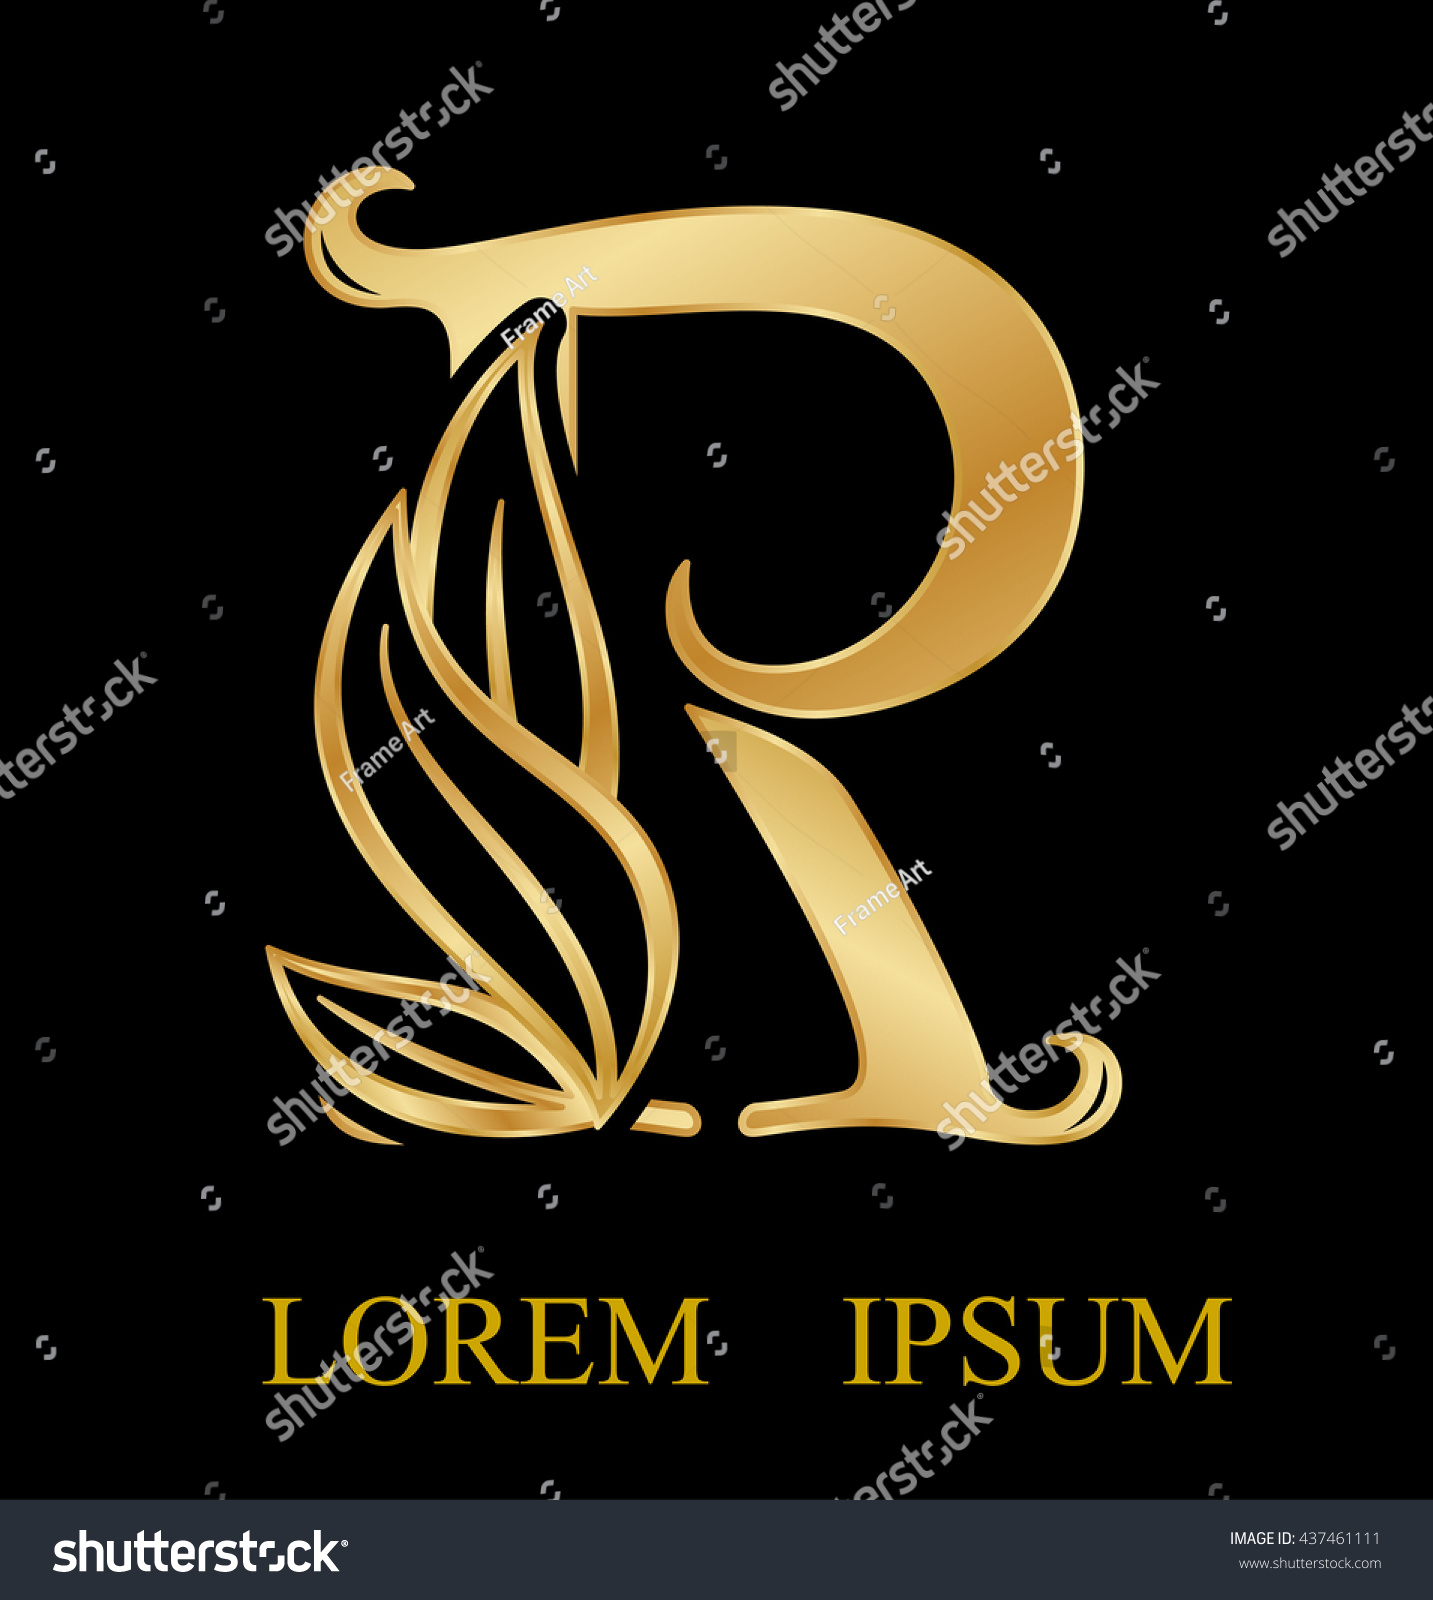 Abstract letter r logo design,Gold, beauty industry and fashion logo ...